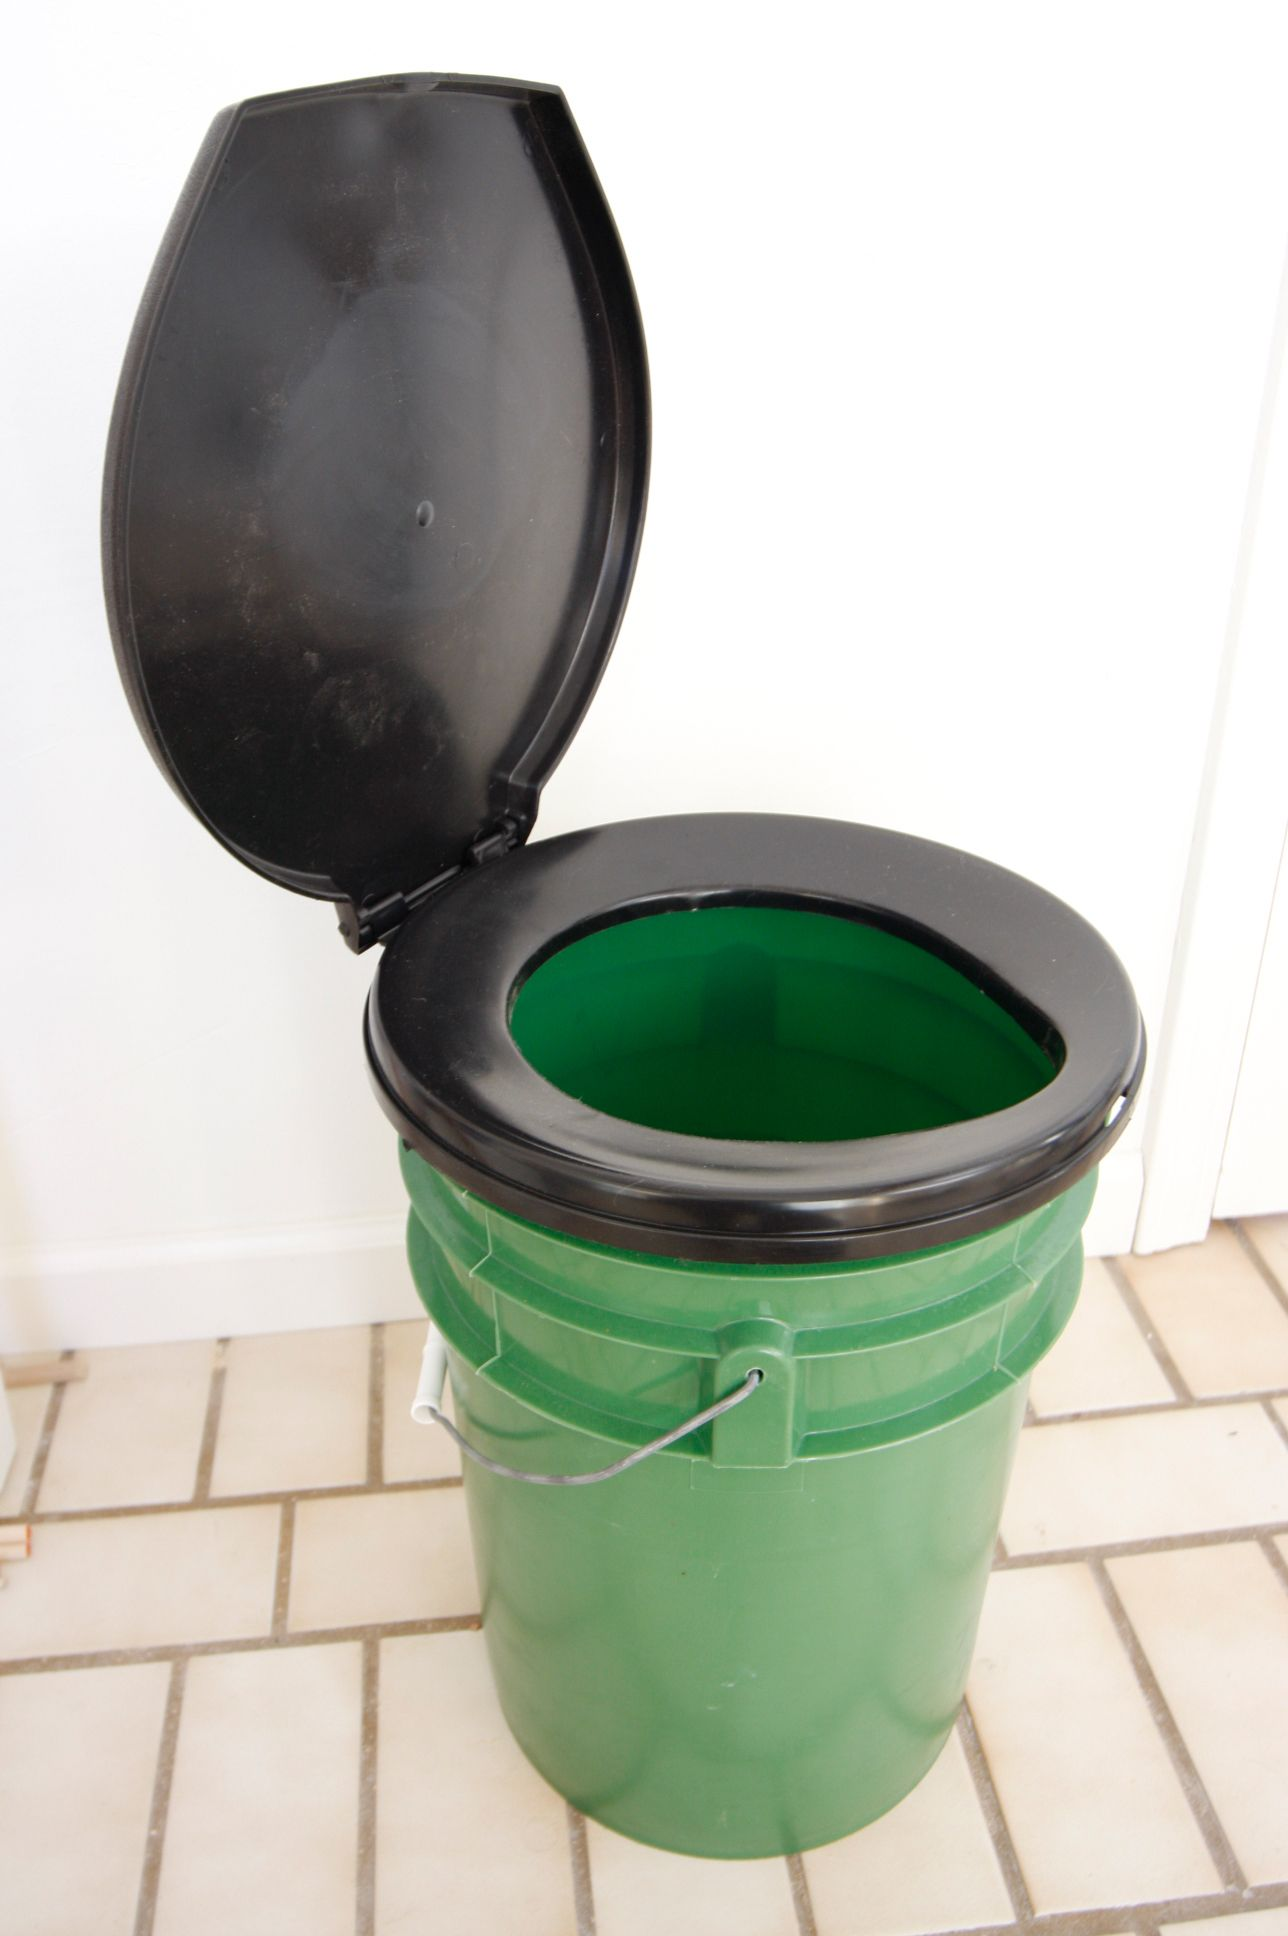 Bucket Toilet Seat For Camping